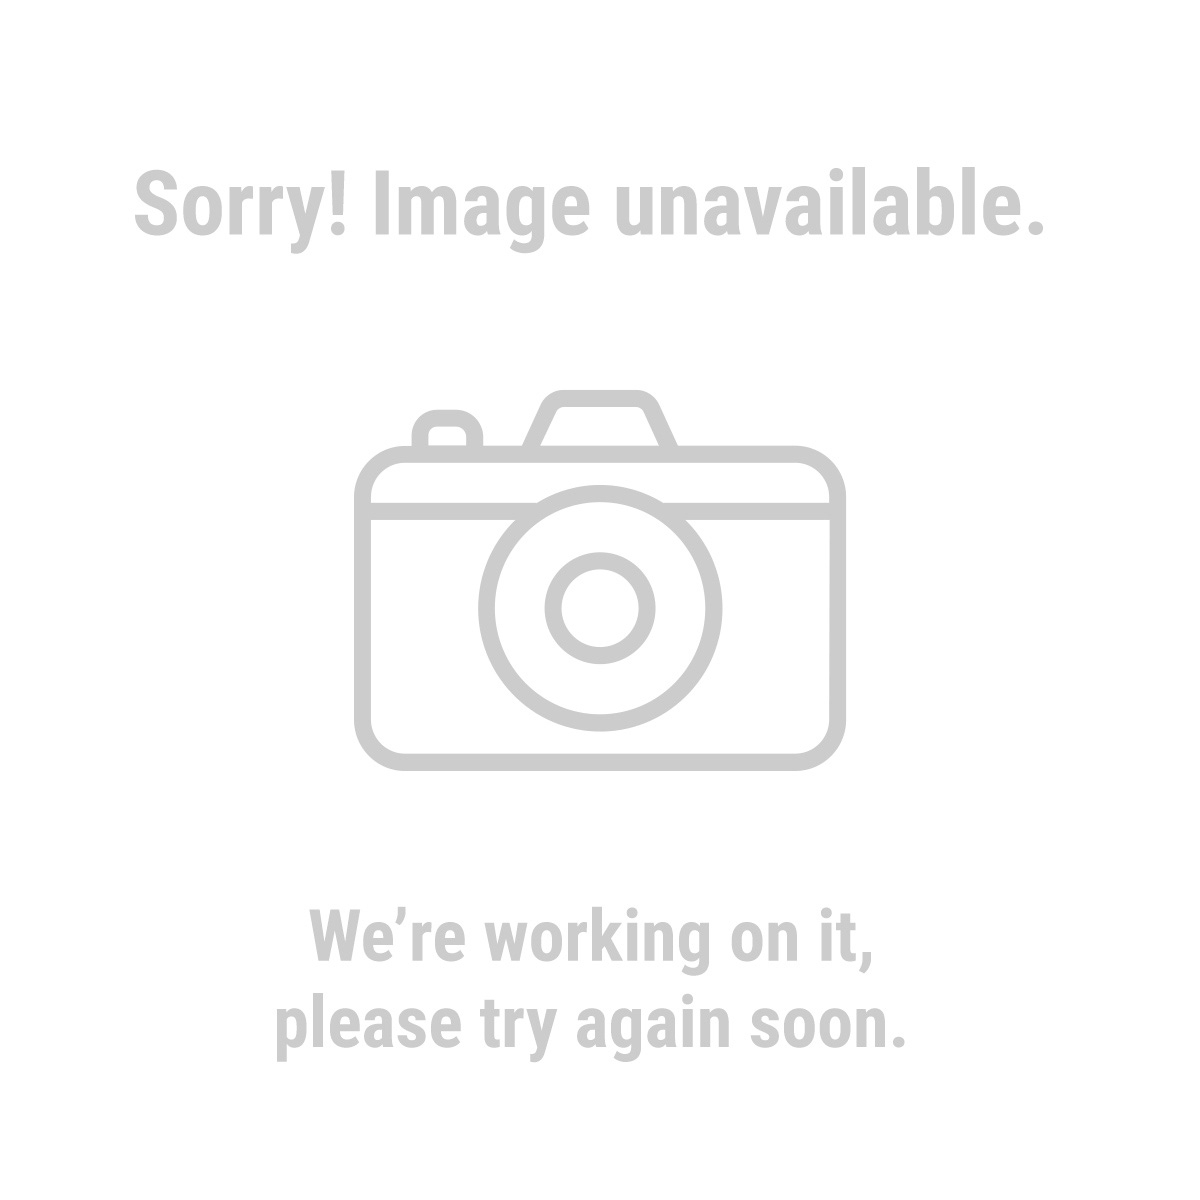 One Stop Gardens 69893 10 Ft. x 12 Ft. Greenhouse with 4 Vents